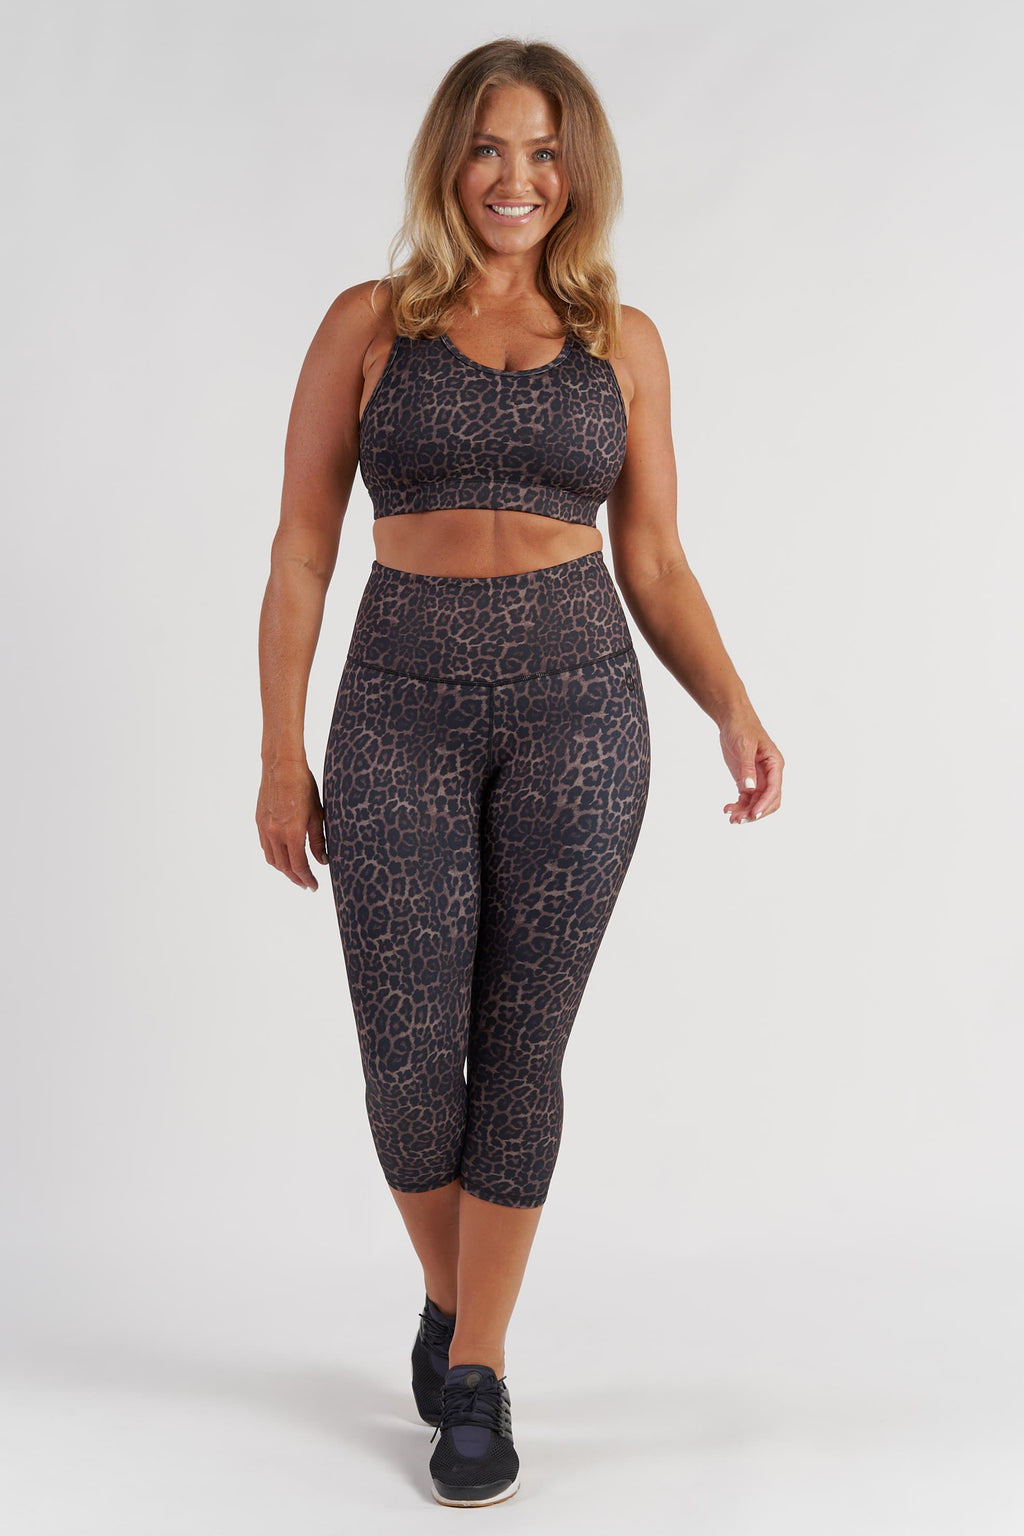 Essential 3/4 Length Tight - Bronze Leopard from Active Truth USA